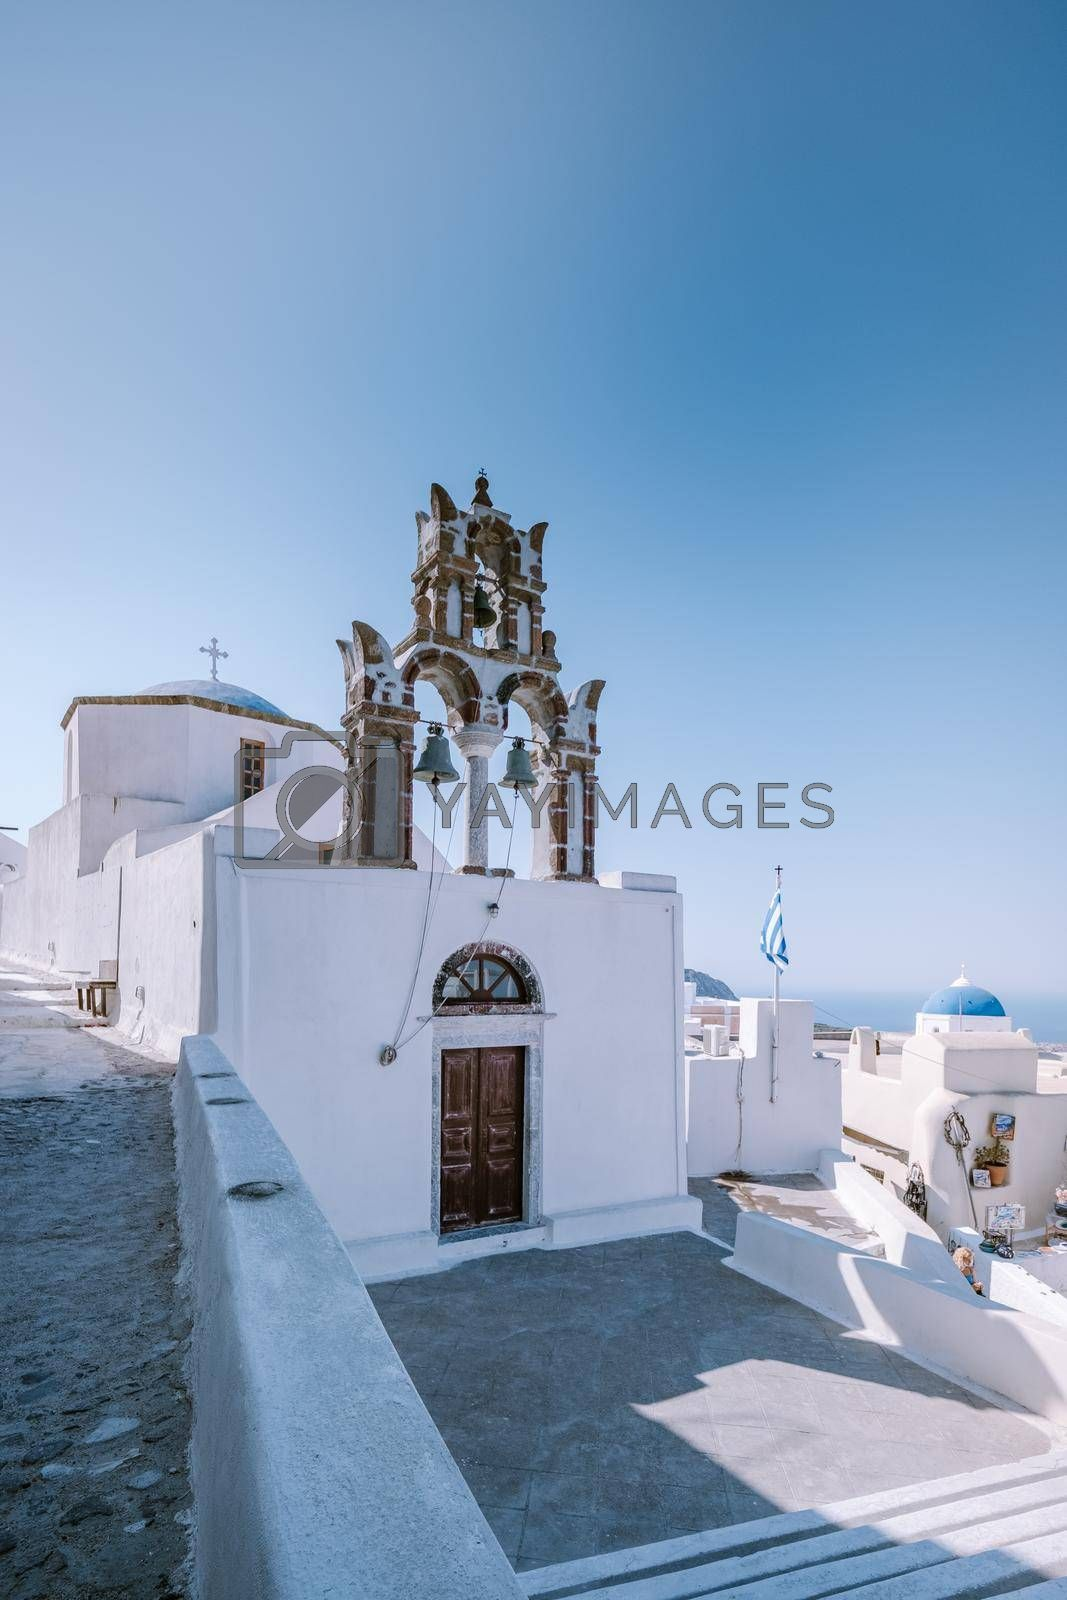 Pyrgos, Santorini, Greece. Famous attraction of white village with cobbled streets, Greek Cyclades Islands, Aegean Sea. High quality photo